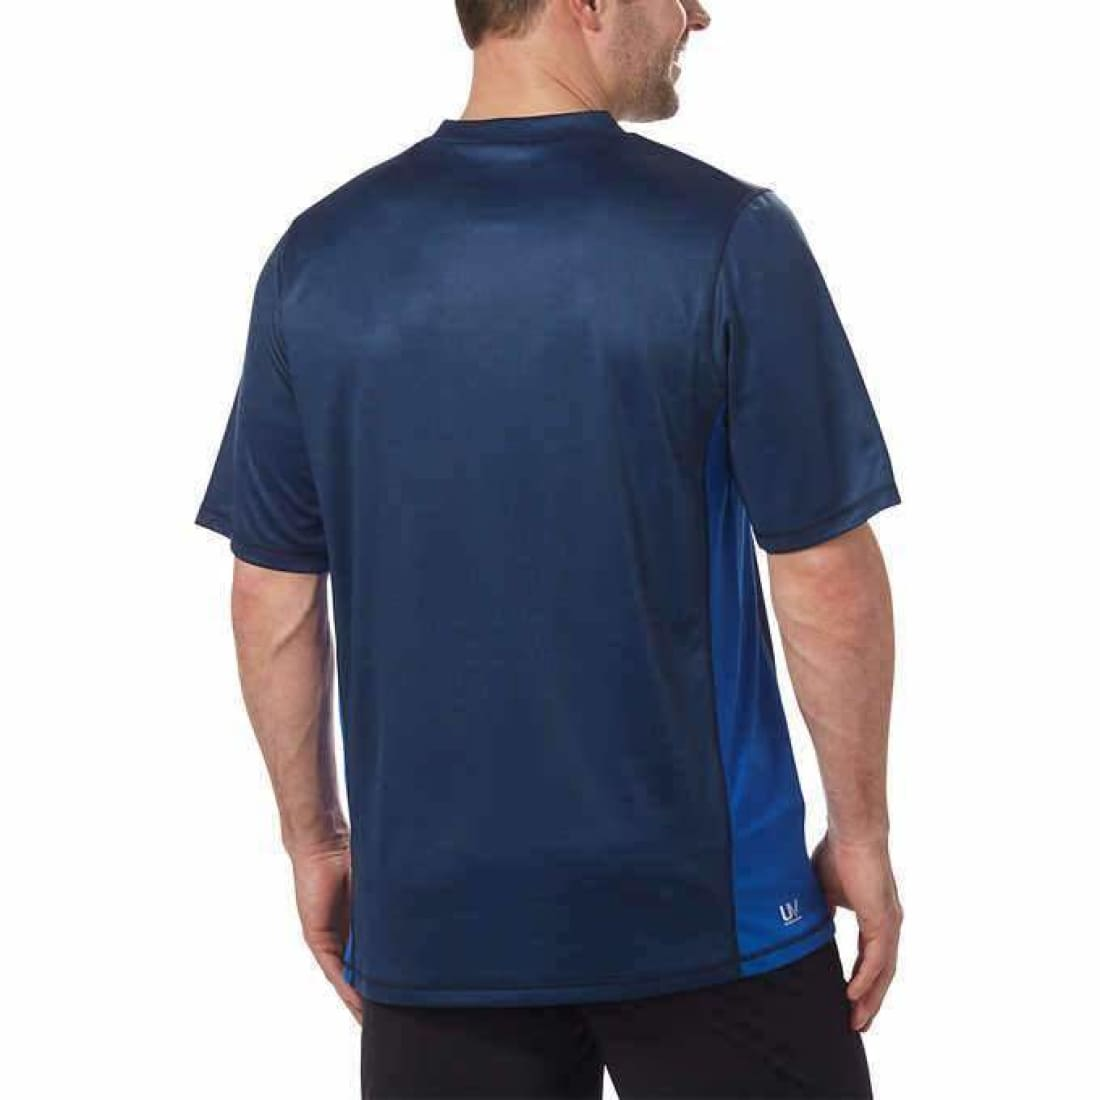 Speedo Mens Sun Protection Tee Casual Shirts